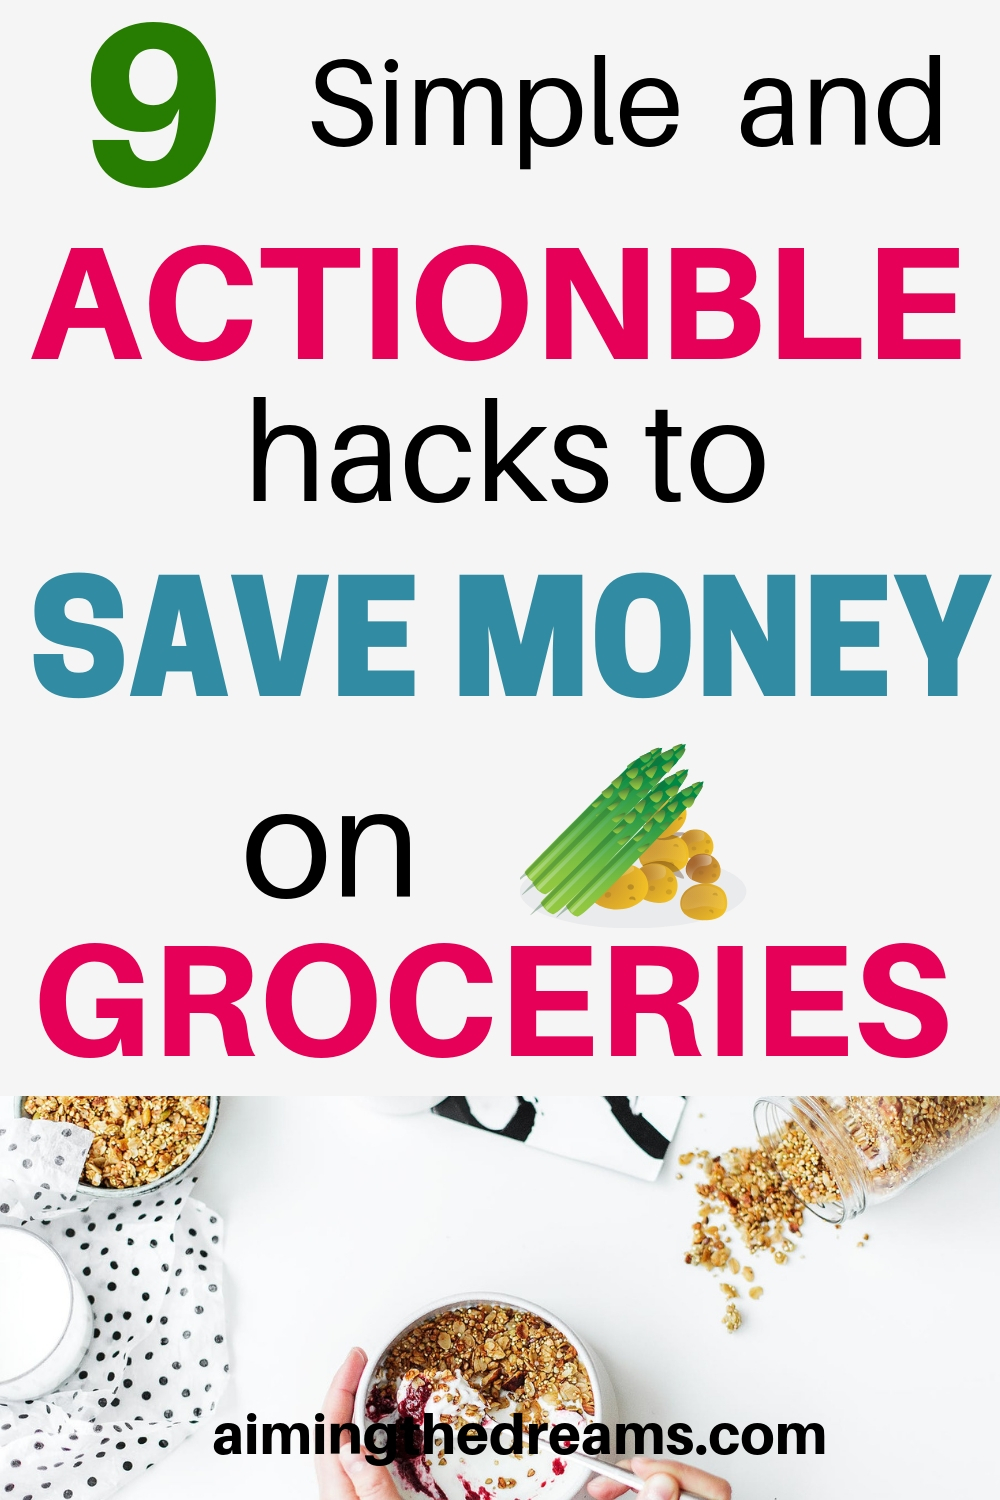 9 simple and actionable hacks to save money on groceries each month. Build wealth with simple changes in your lifestyle.